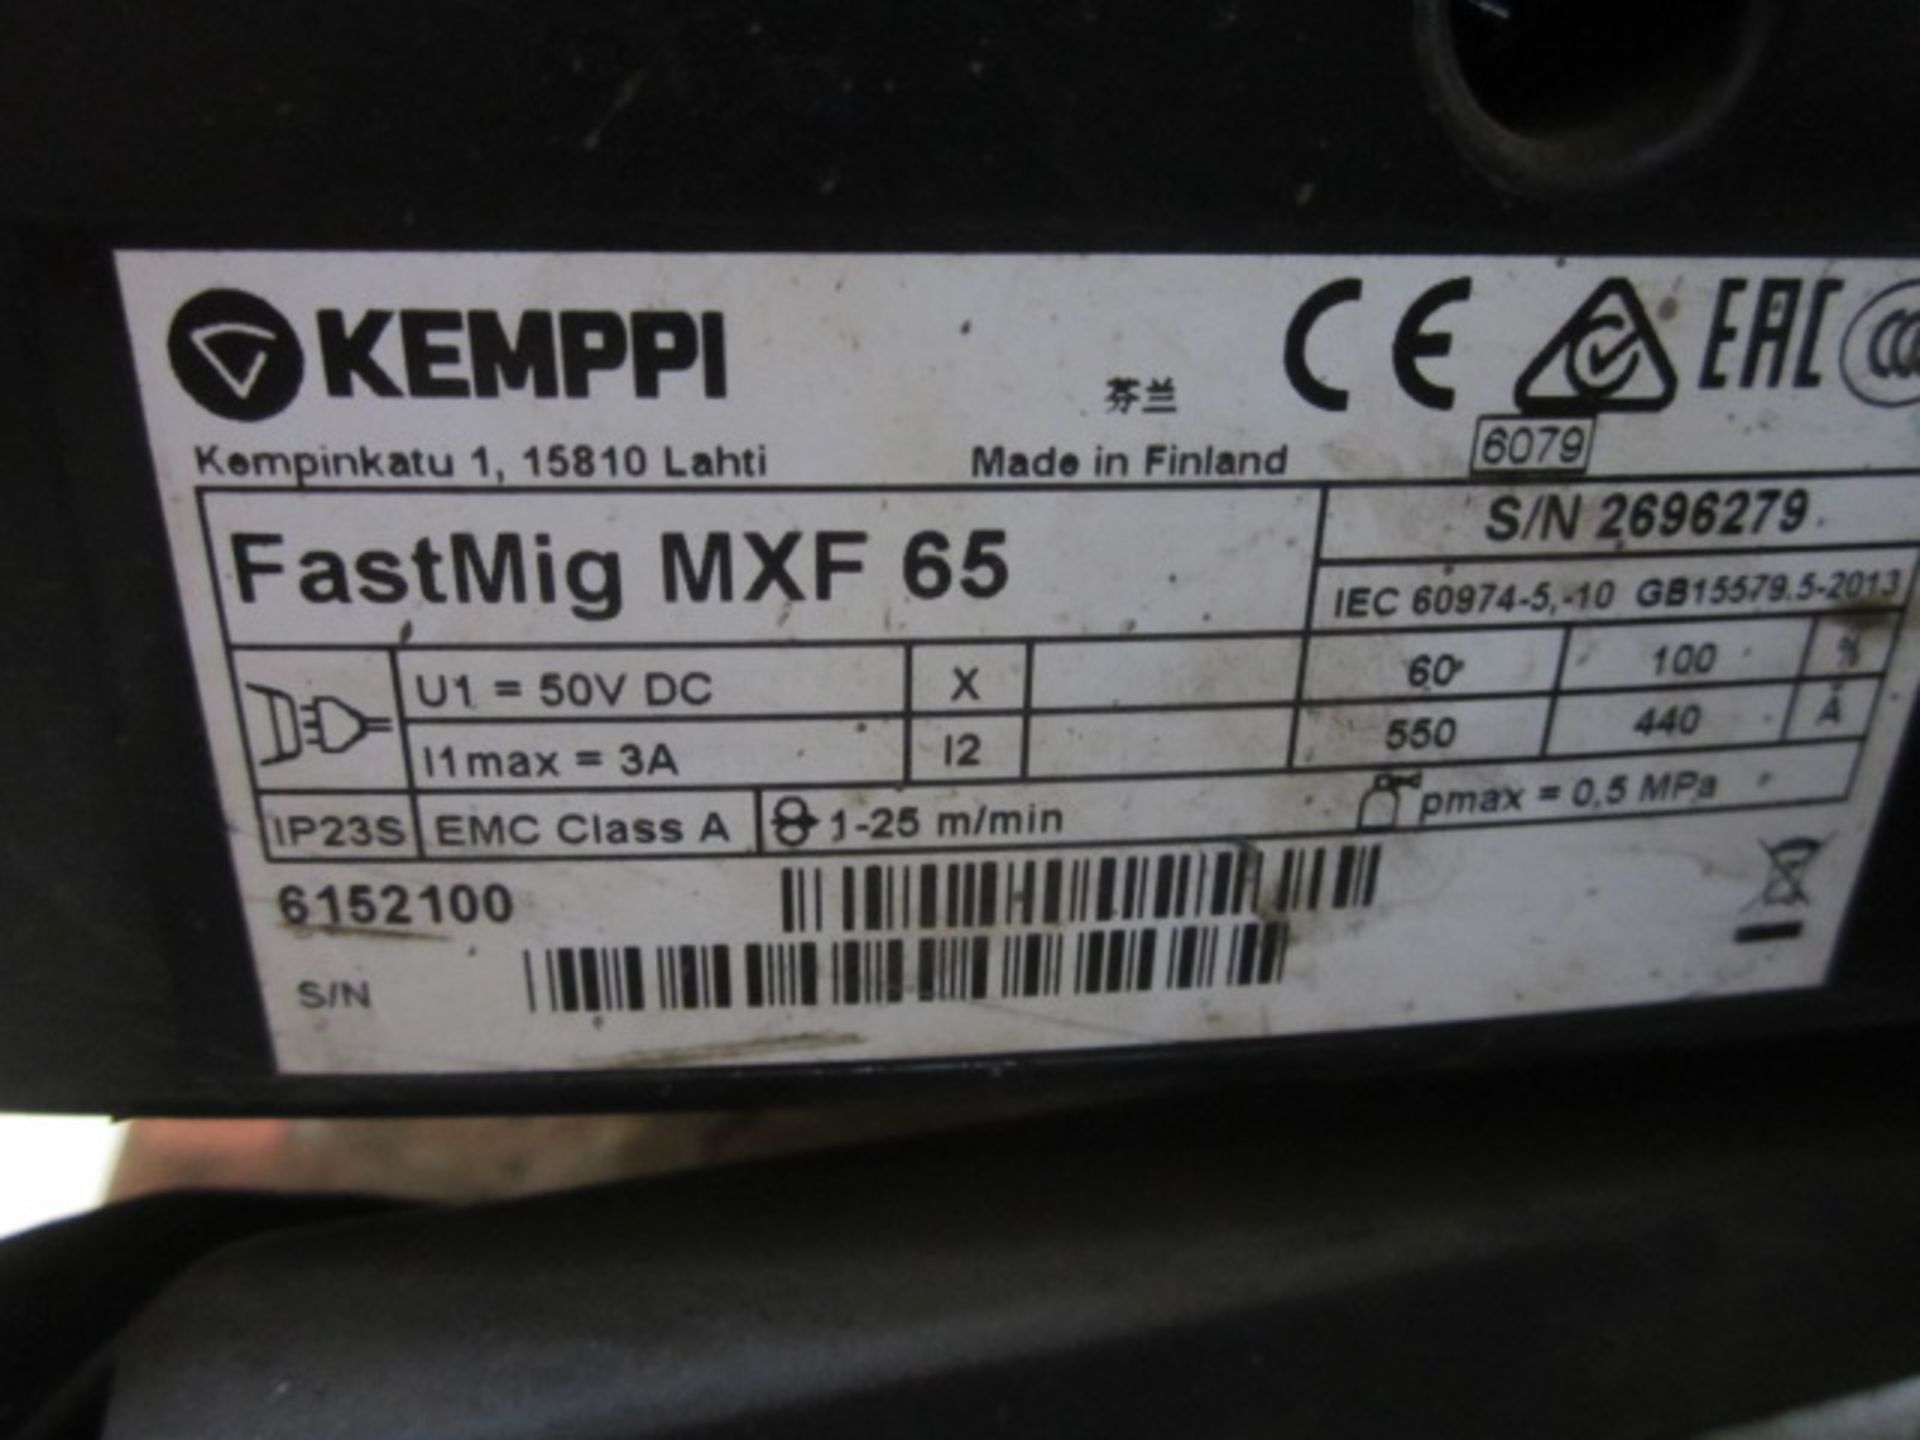 Kemppi Fast Mig M420 mig welder, serial no. 2694679, with Fast Mig MXF65 wire feeder, serial no. - Image 6 of 7